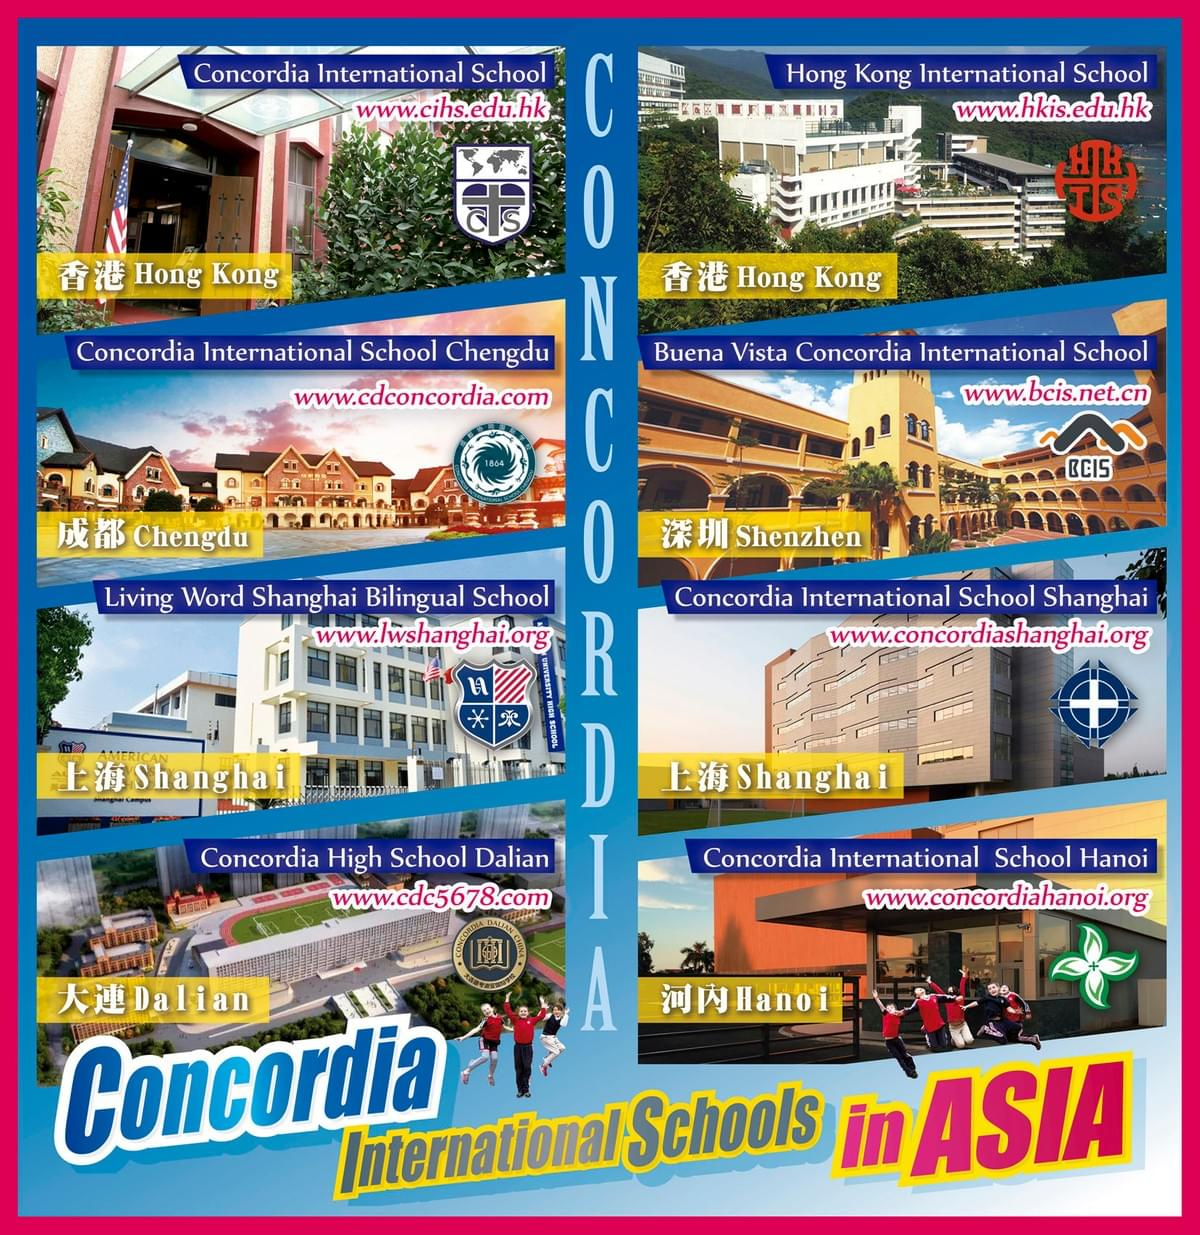 Concordia international schools in Asia